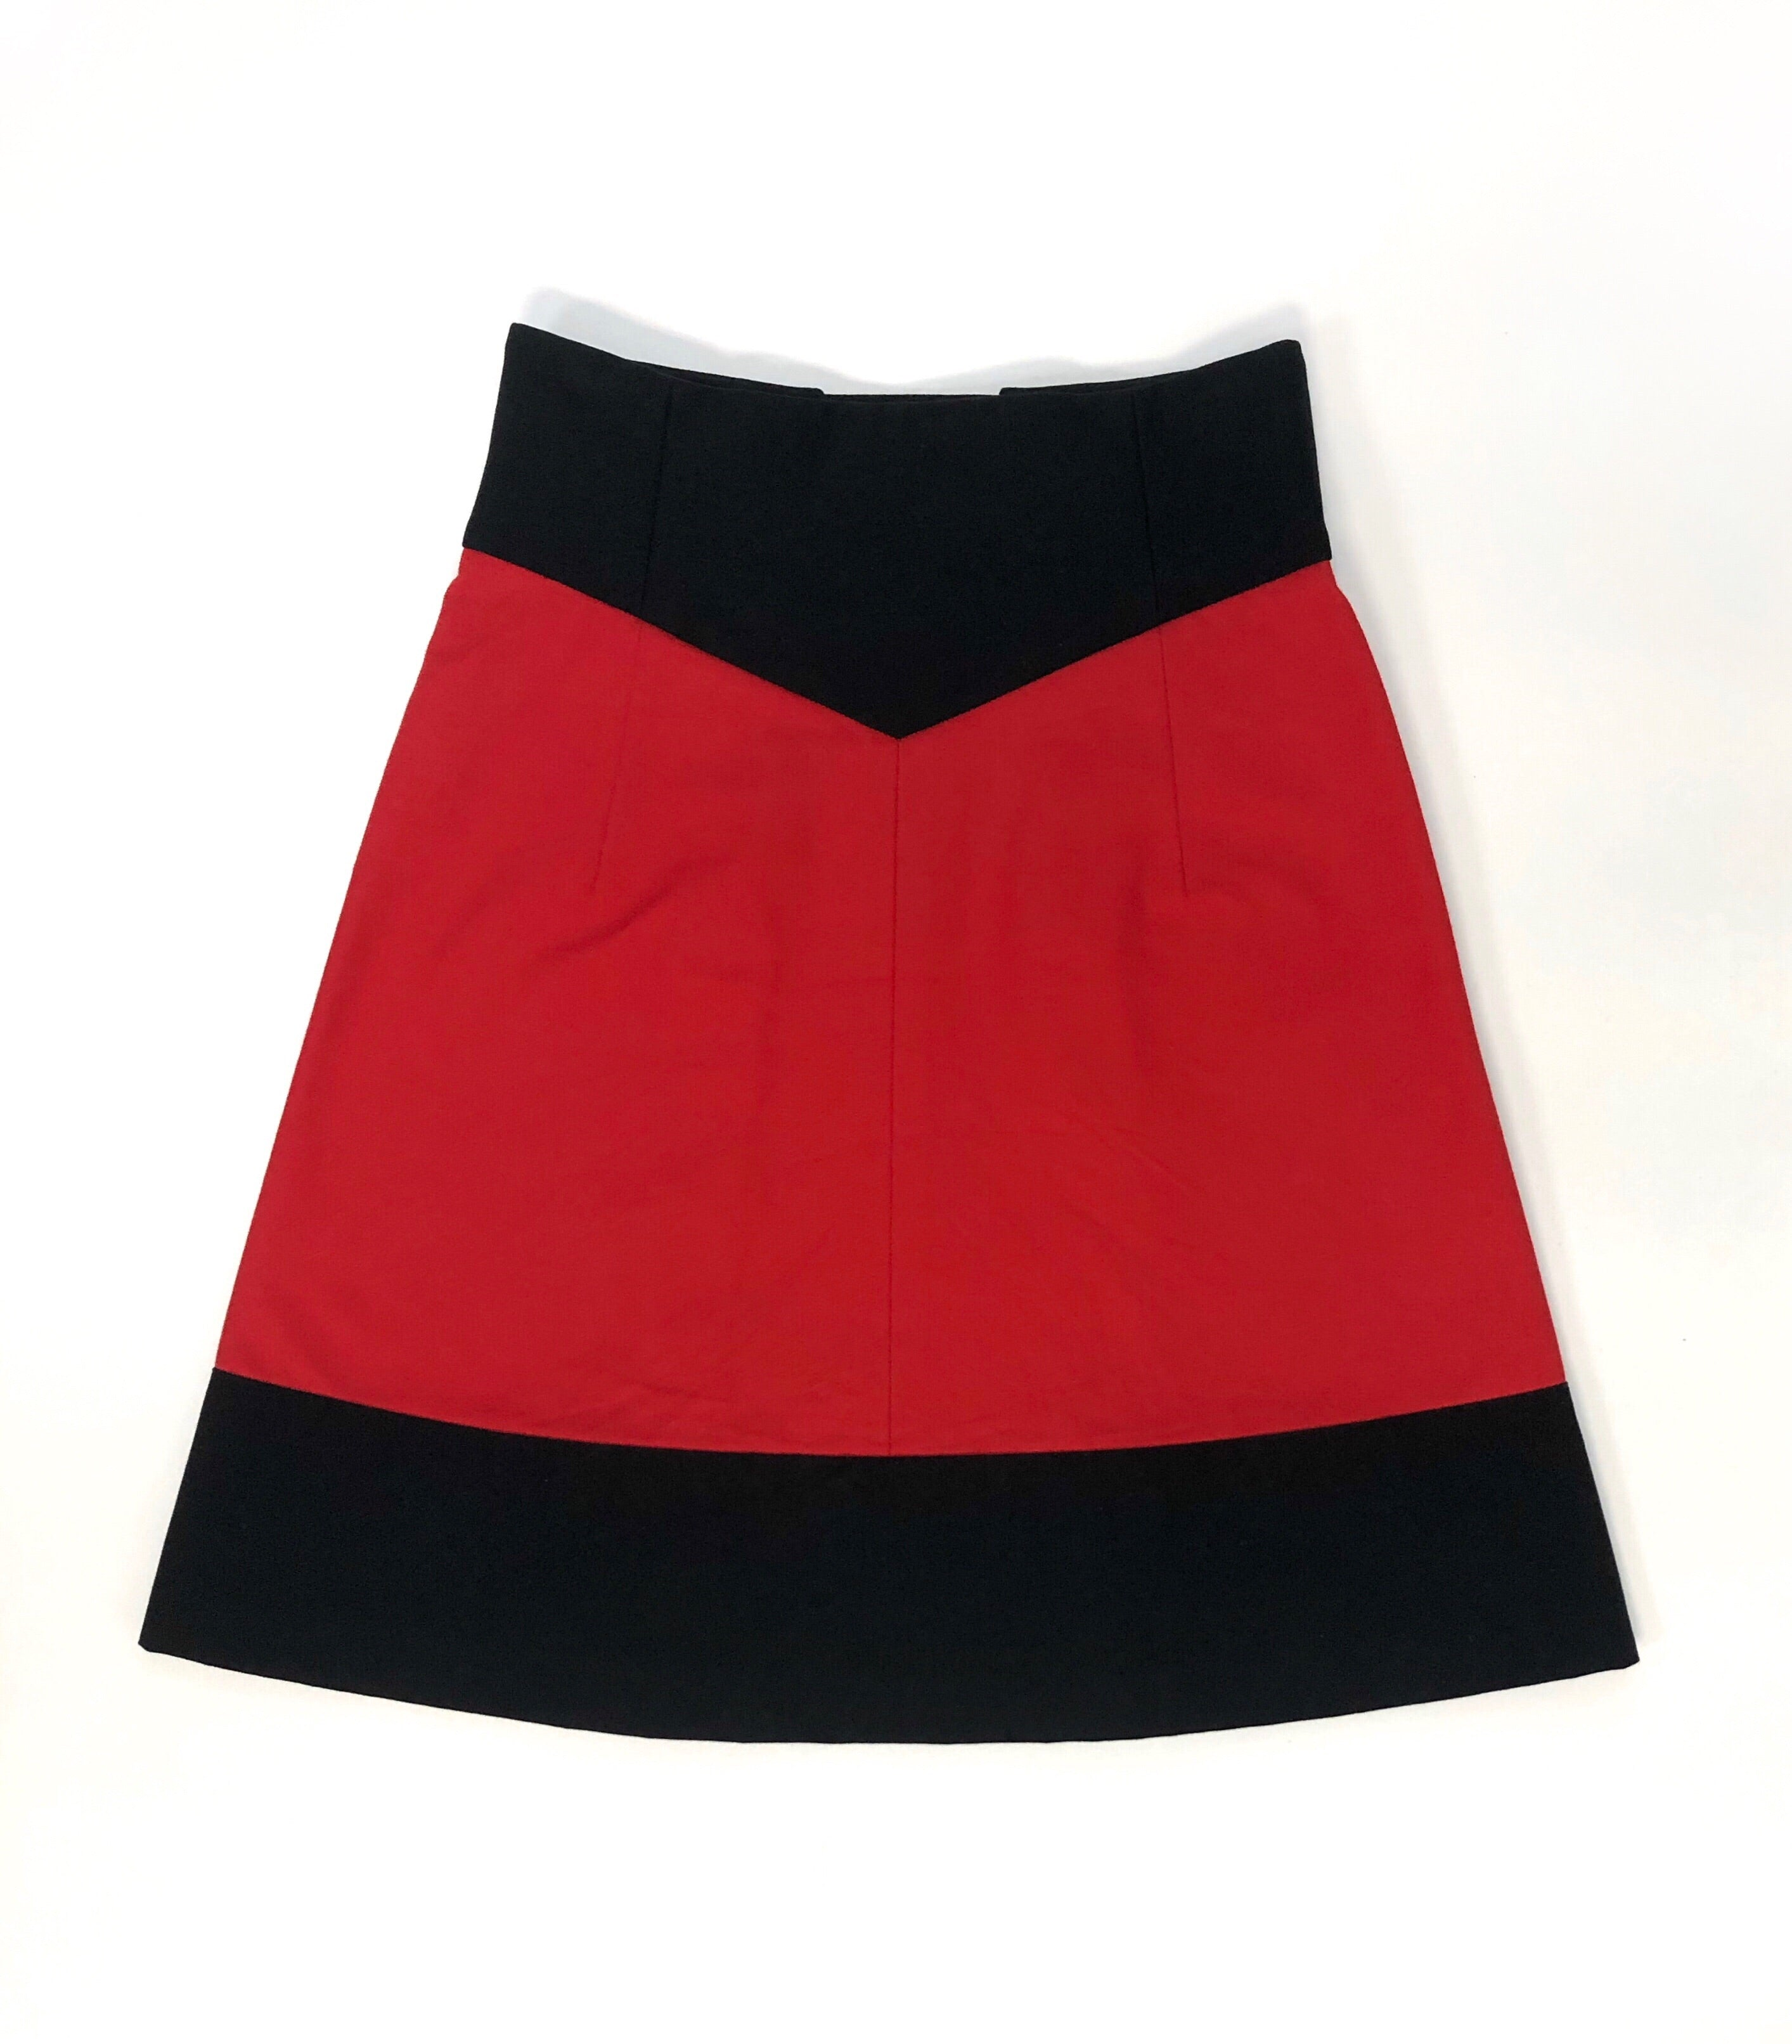 Yves Saint Laurent Nautical Skirt